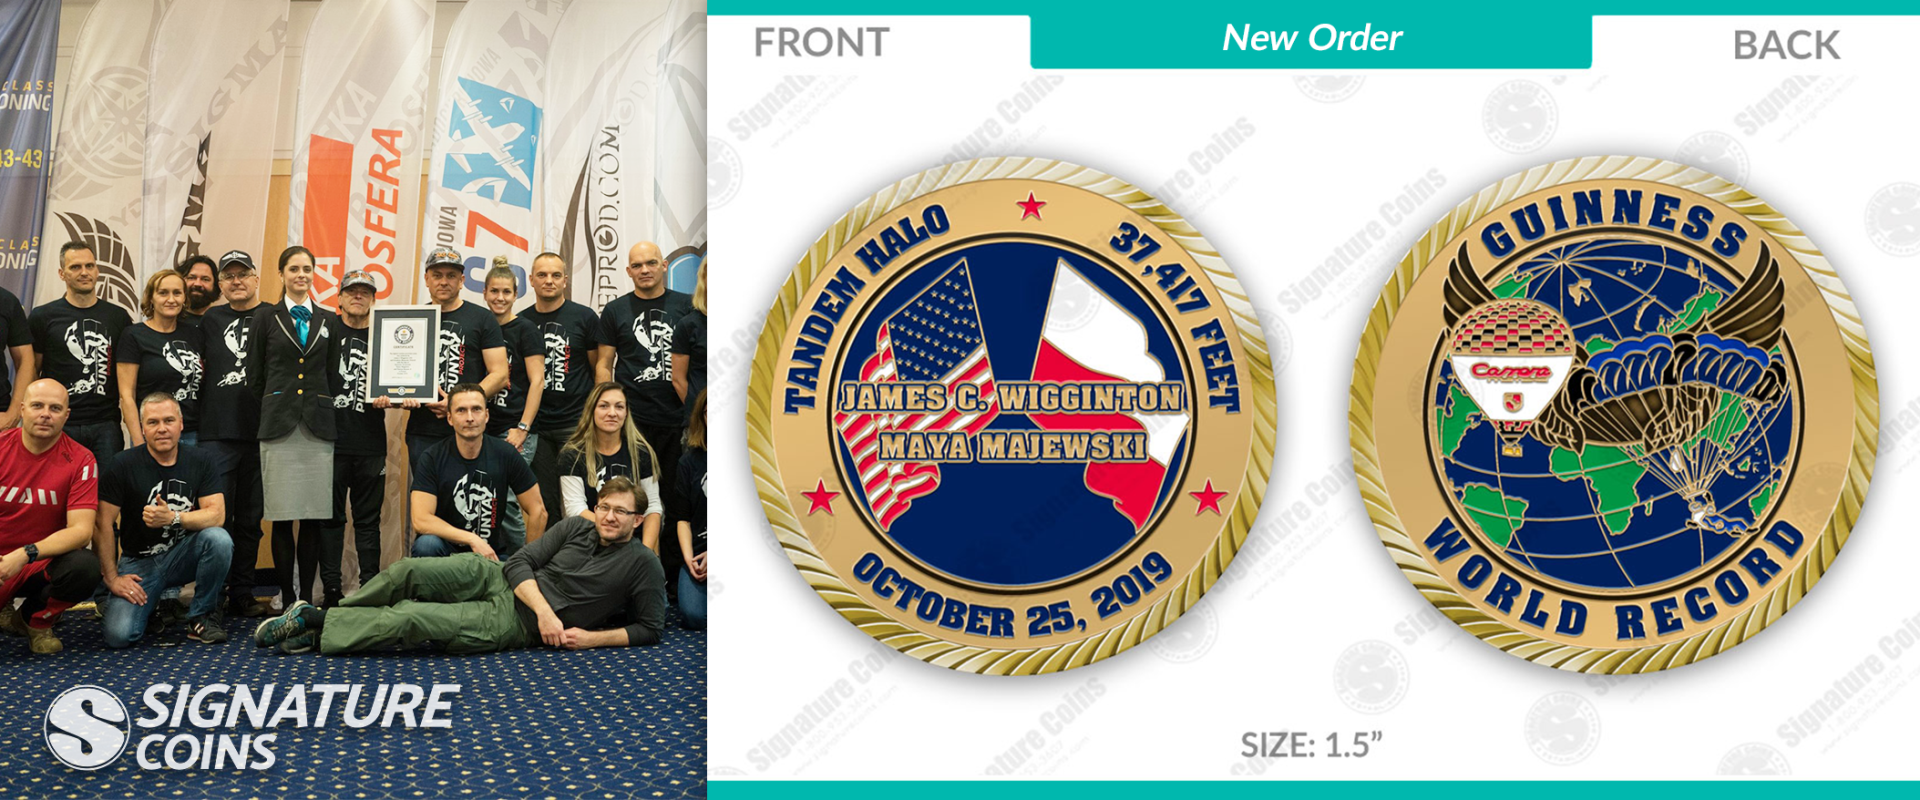 World Record Custom Challenge Coin Created In Honor Of Highest Tandem Skydive Ever Https Custom Challenge Coins Promotional Products Marketing World Records